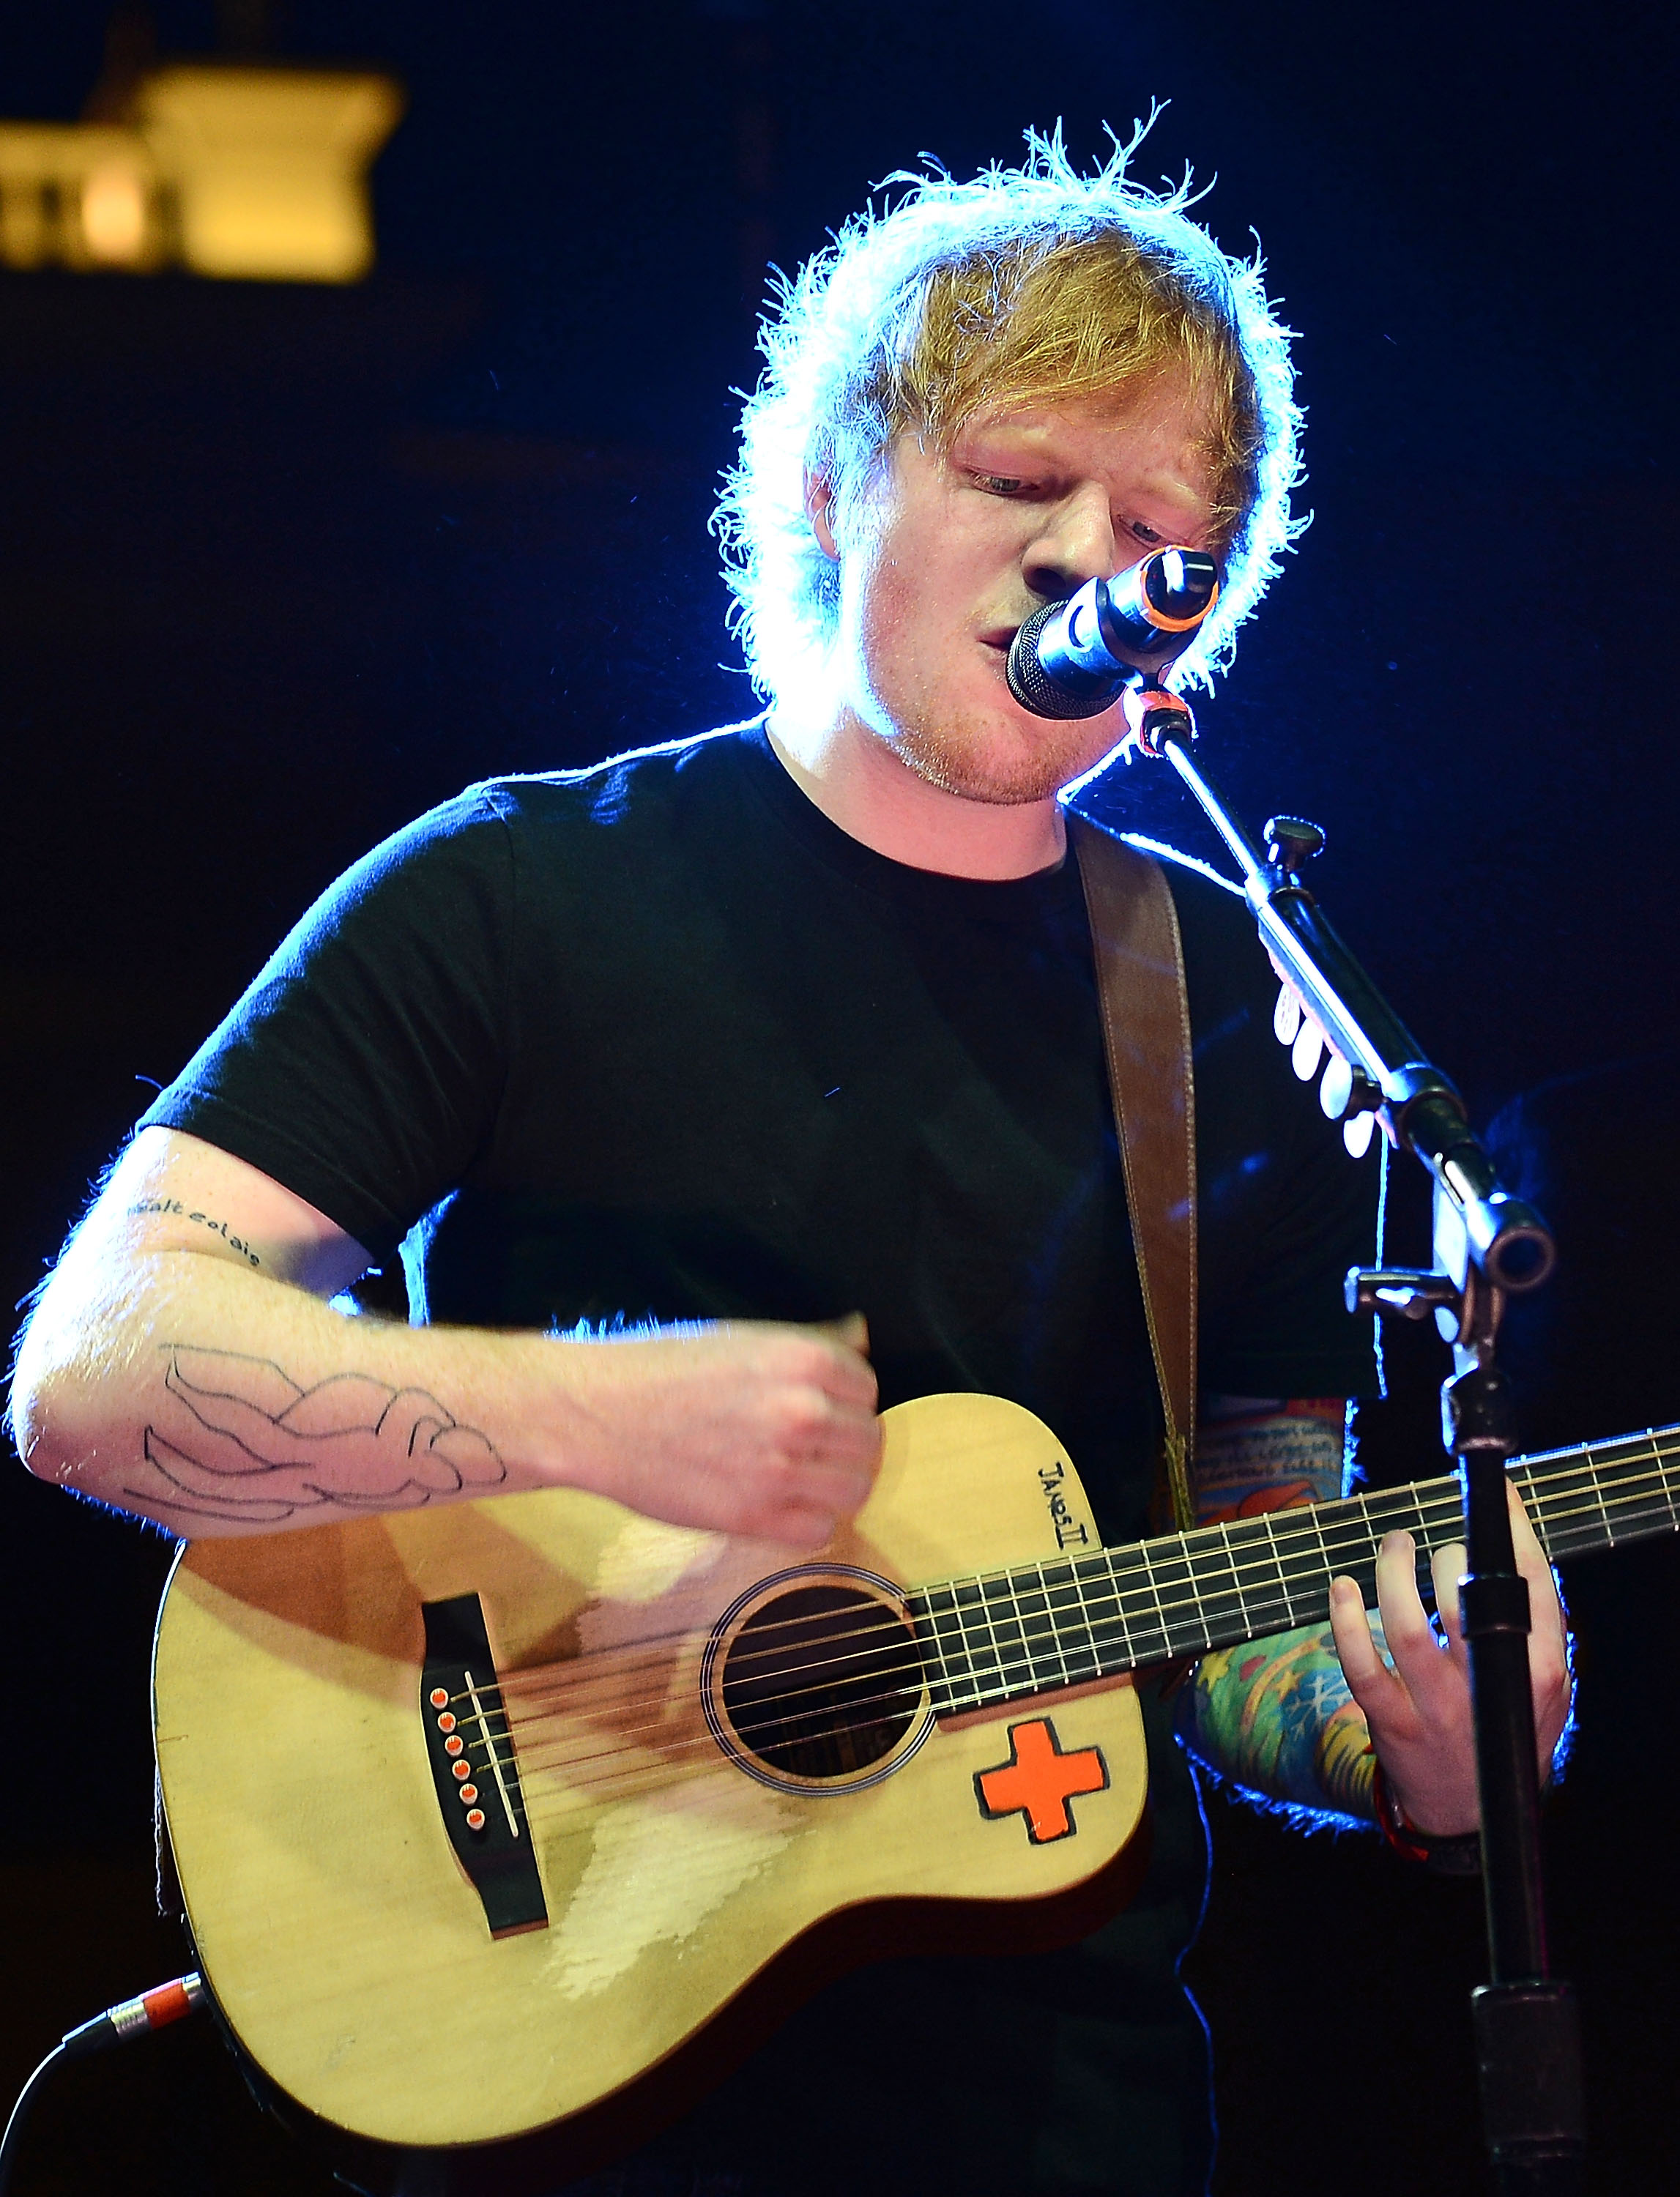 ​We can't believe Ed Sheeran's new tattoo - see it here!